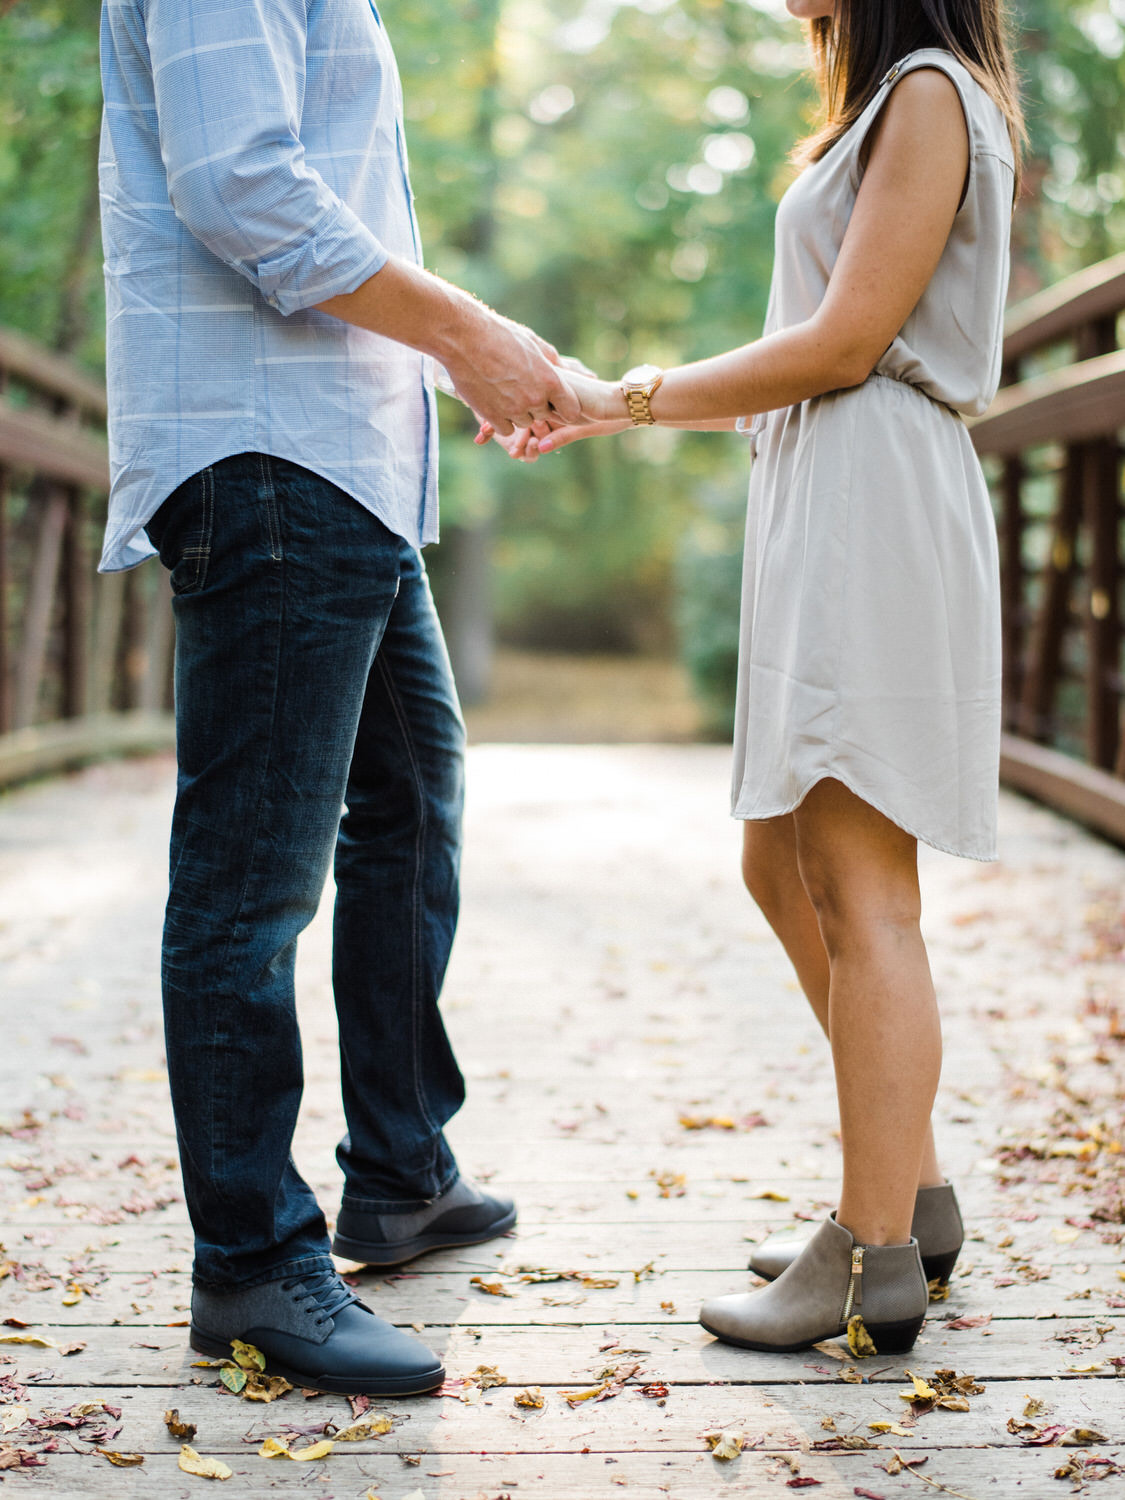 Holding hands on a bridge, close cropped